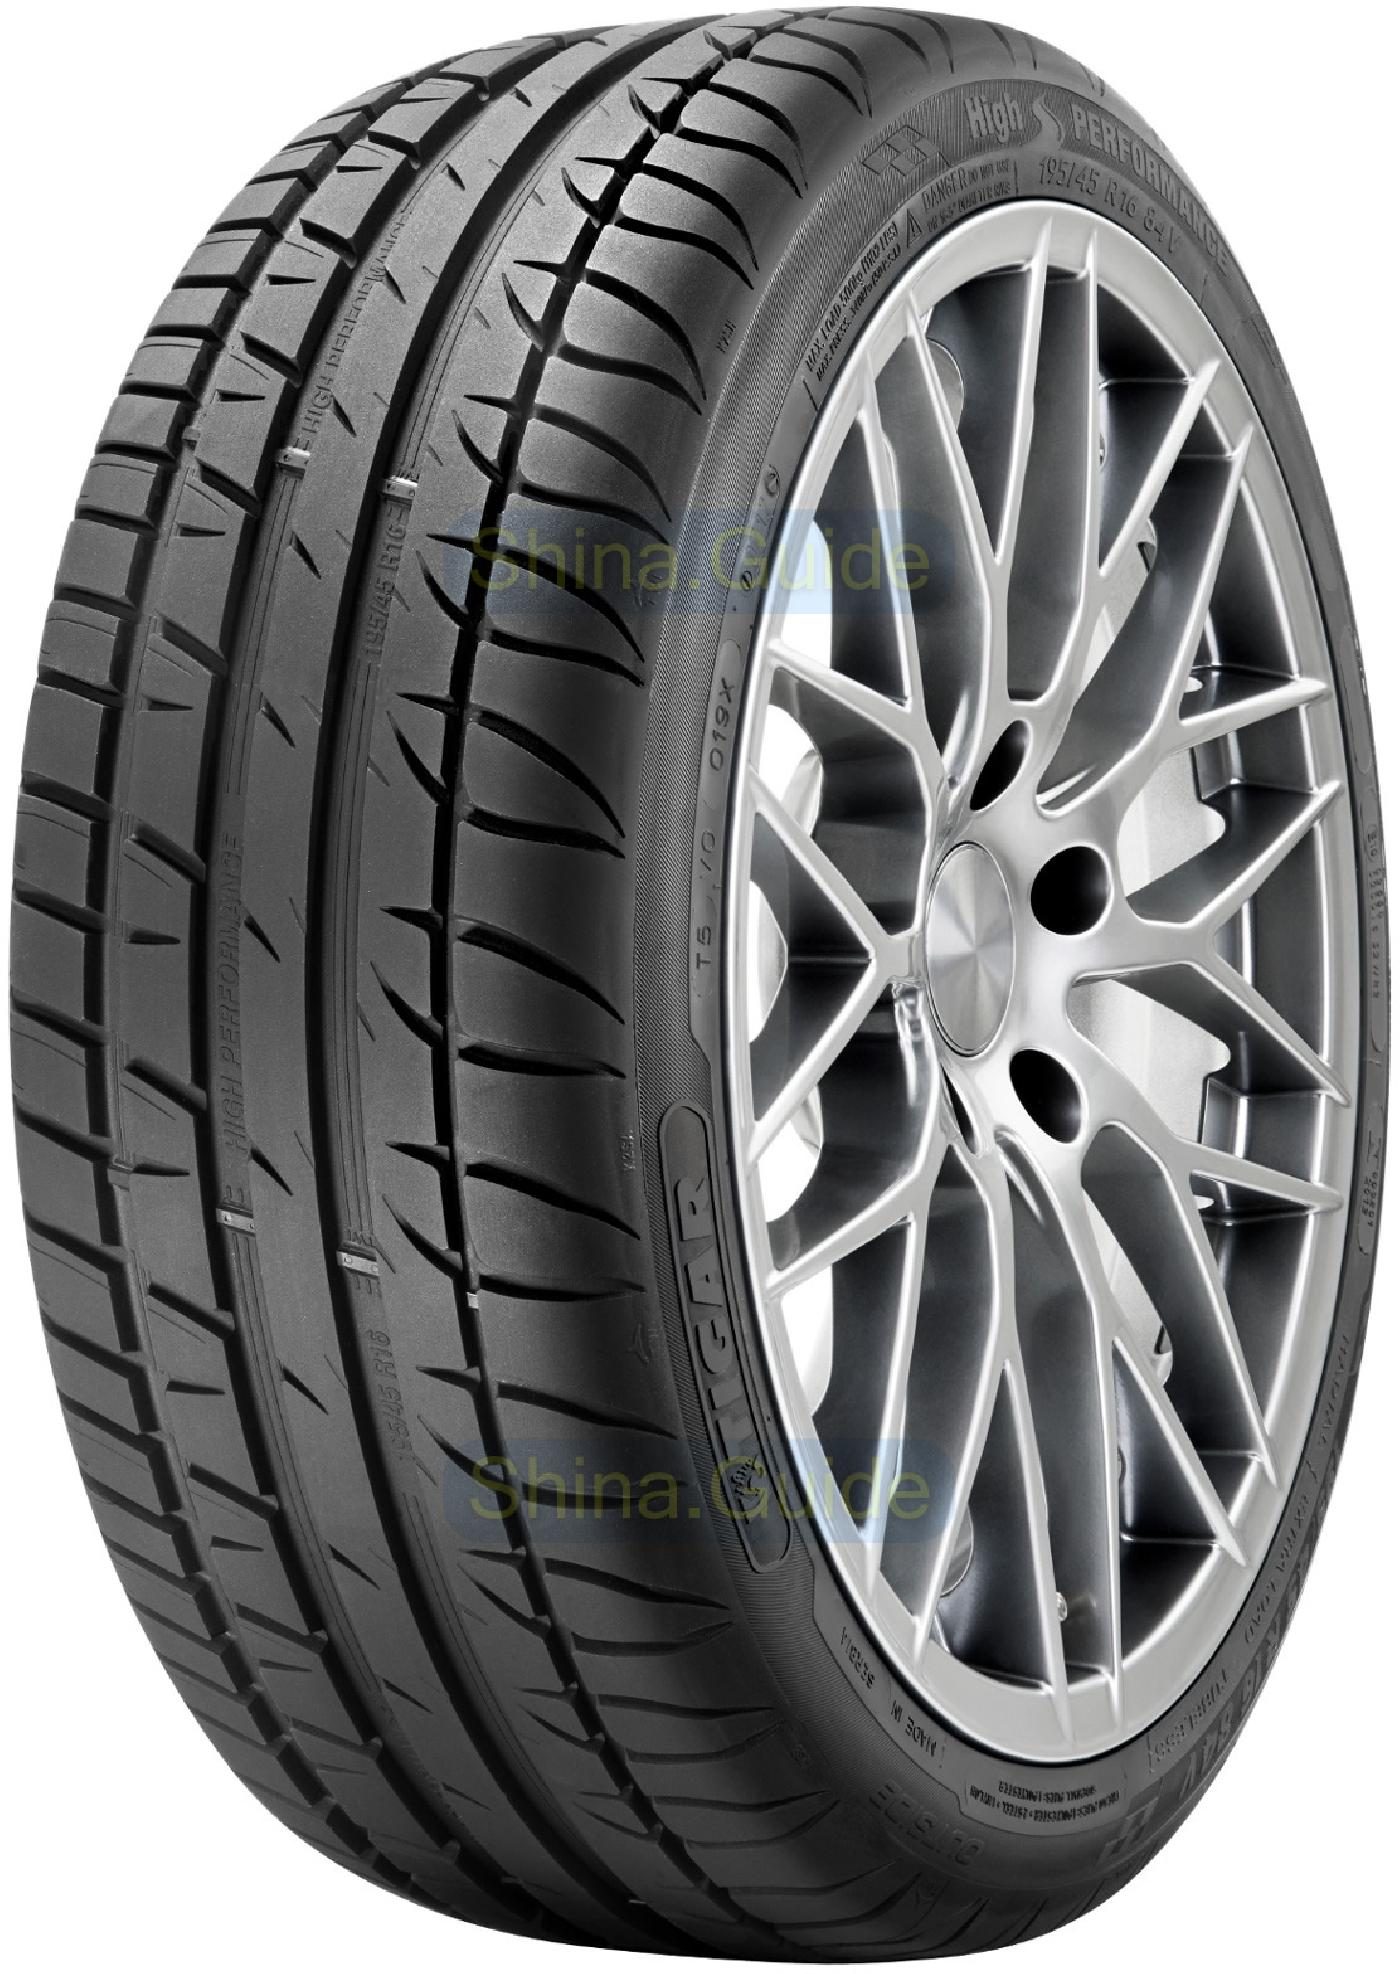 TIGAR HIGH PERFORMANCE 185/55 R16 87V